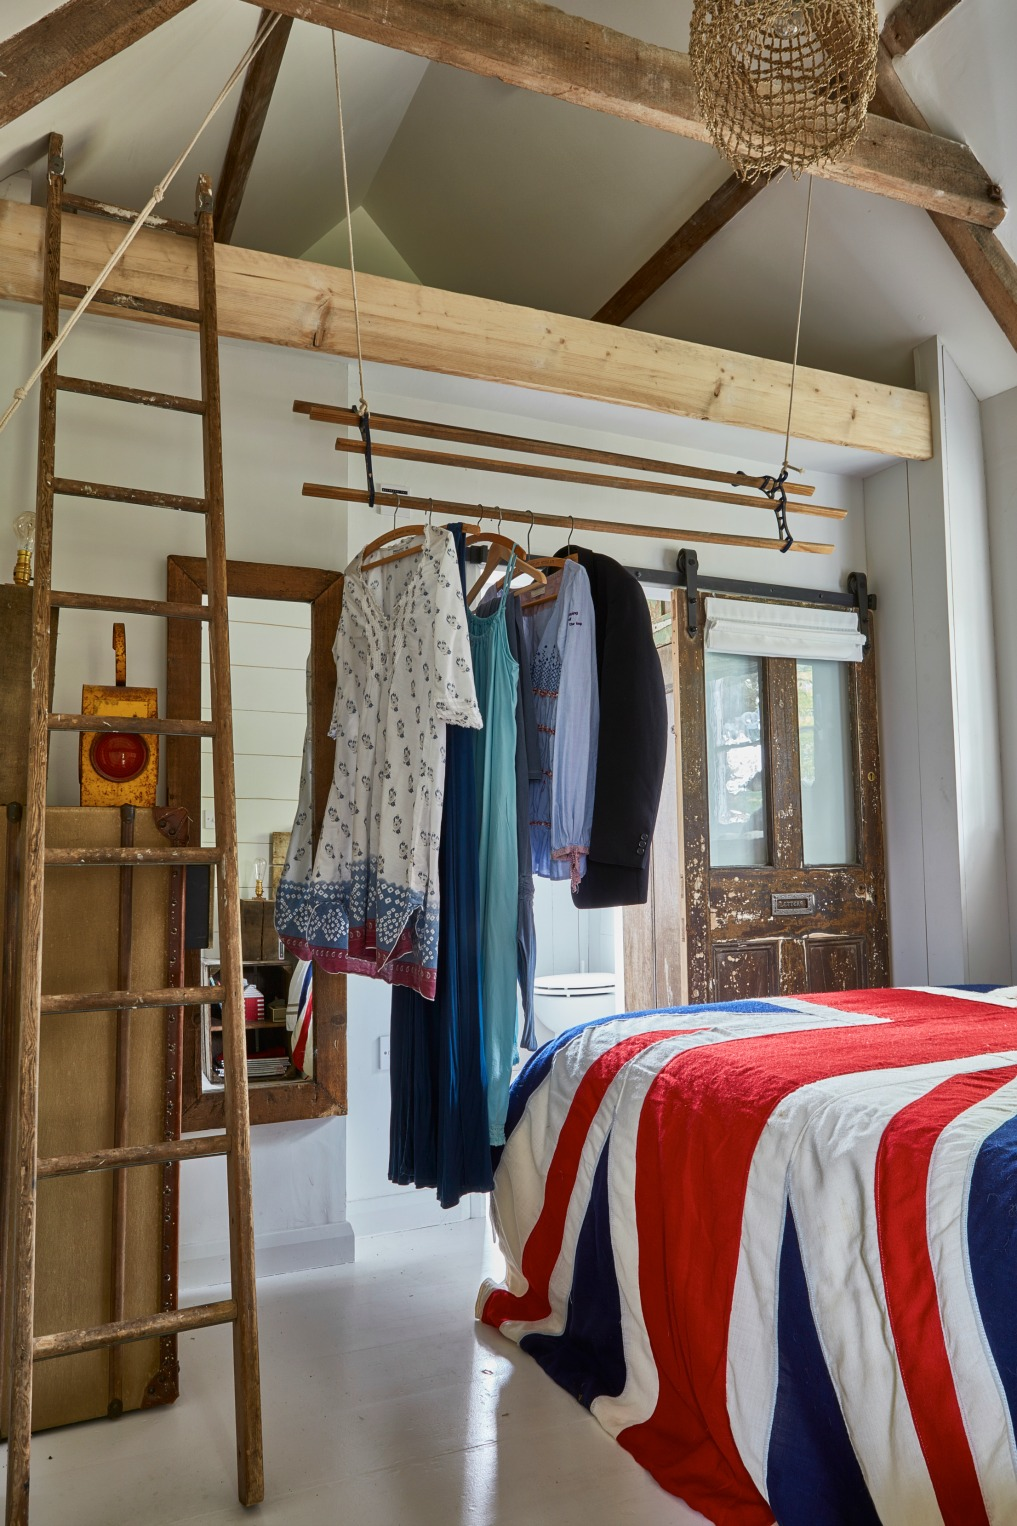 Cottage bedroom complete with old ceiling beams and a pulley system in place of a closet kellyelko.com